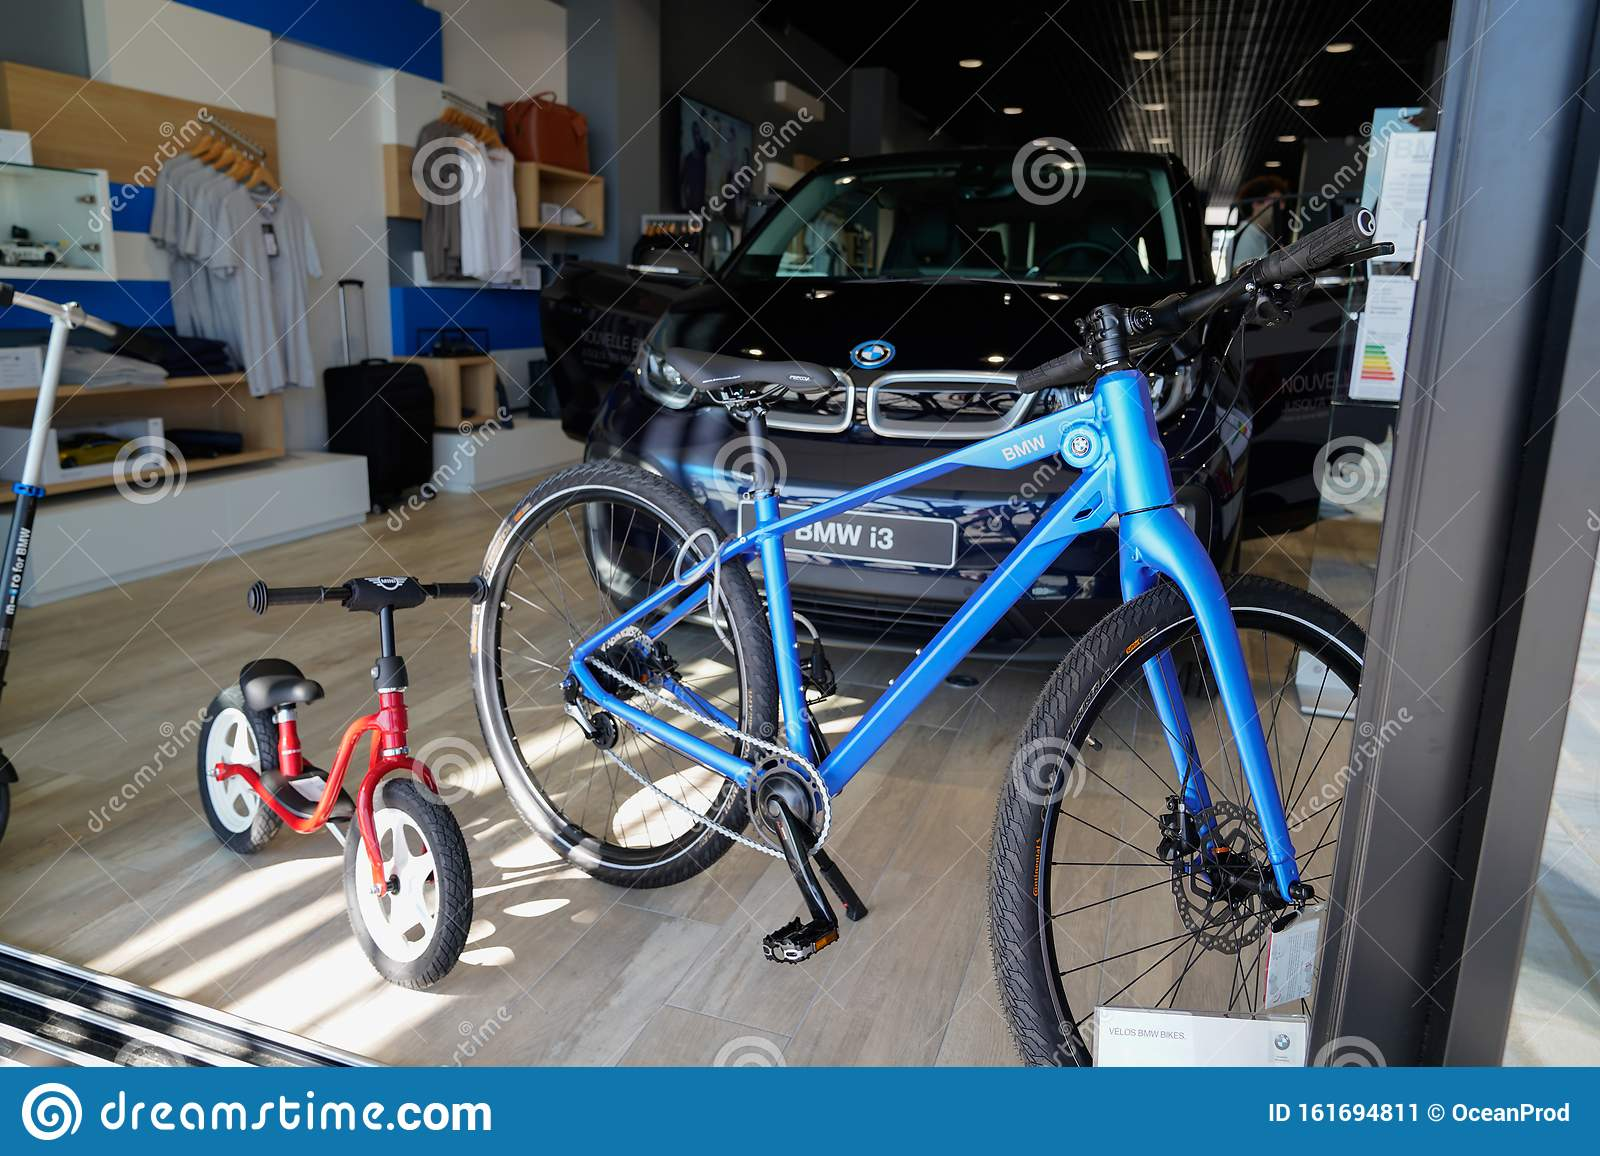 Bordeaux Aquitaine France 10 17 2019 Shopping Mall Bmw Store Clothing Bike Accessories Retail Shop Fashion Editorial Photo Image Of Display Business 161694811